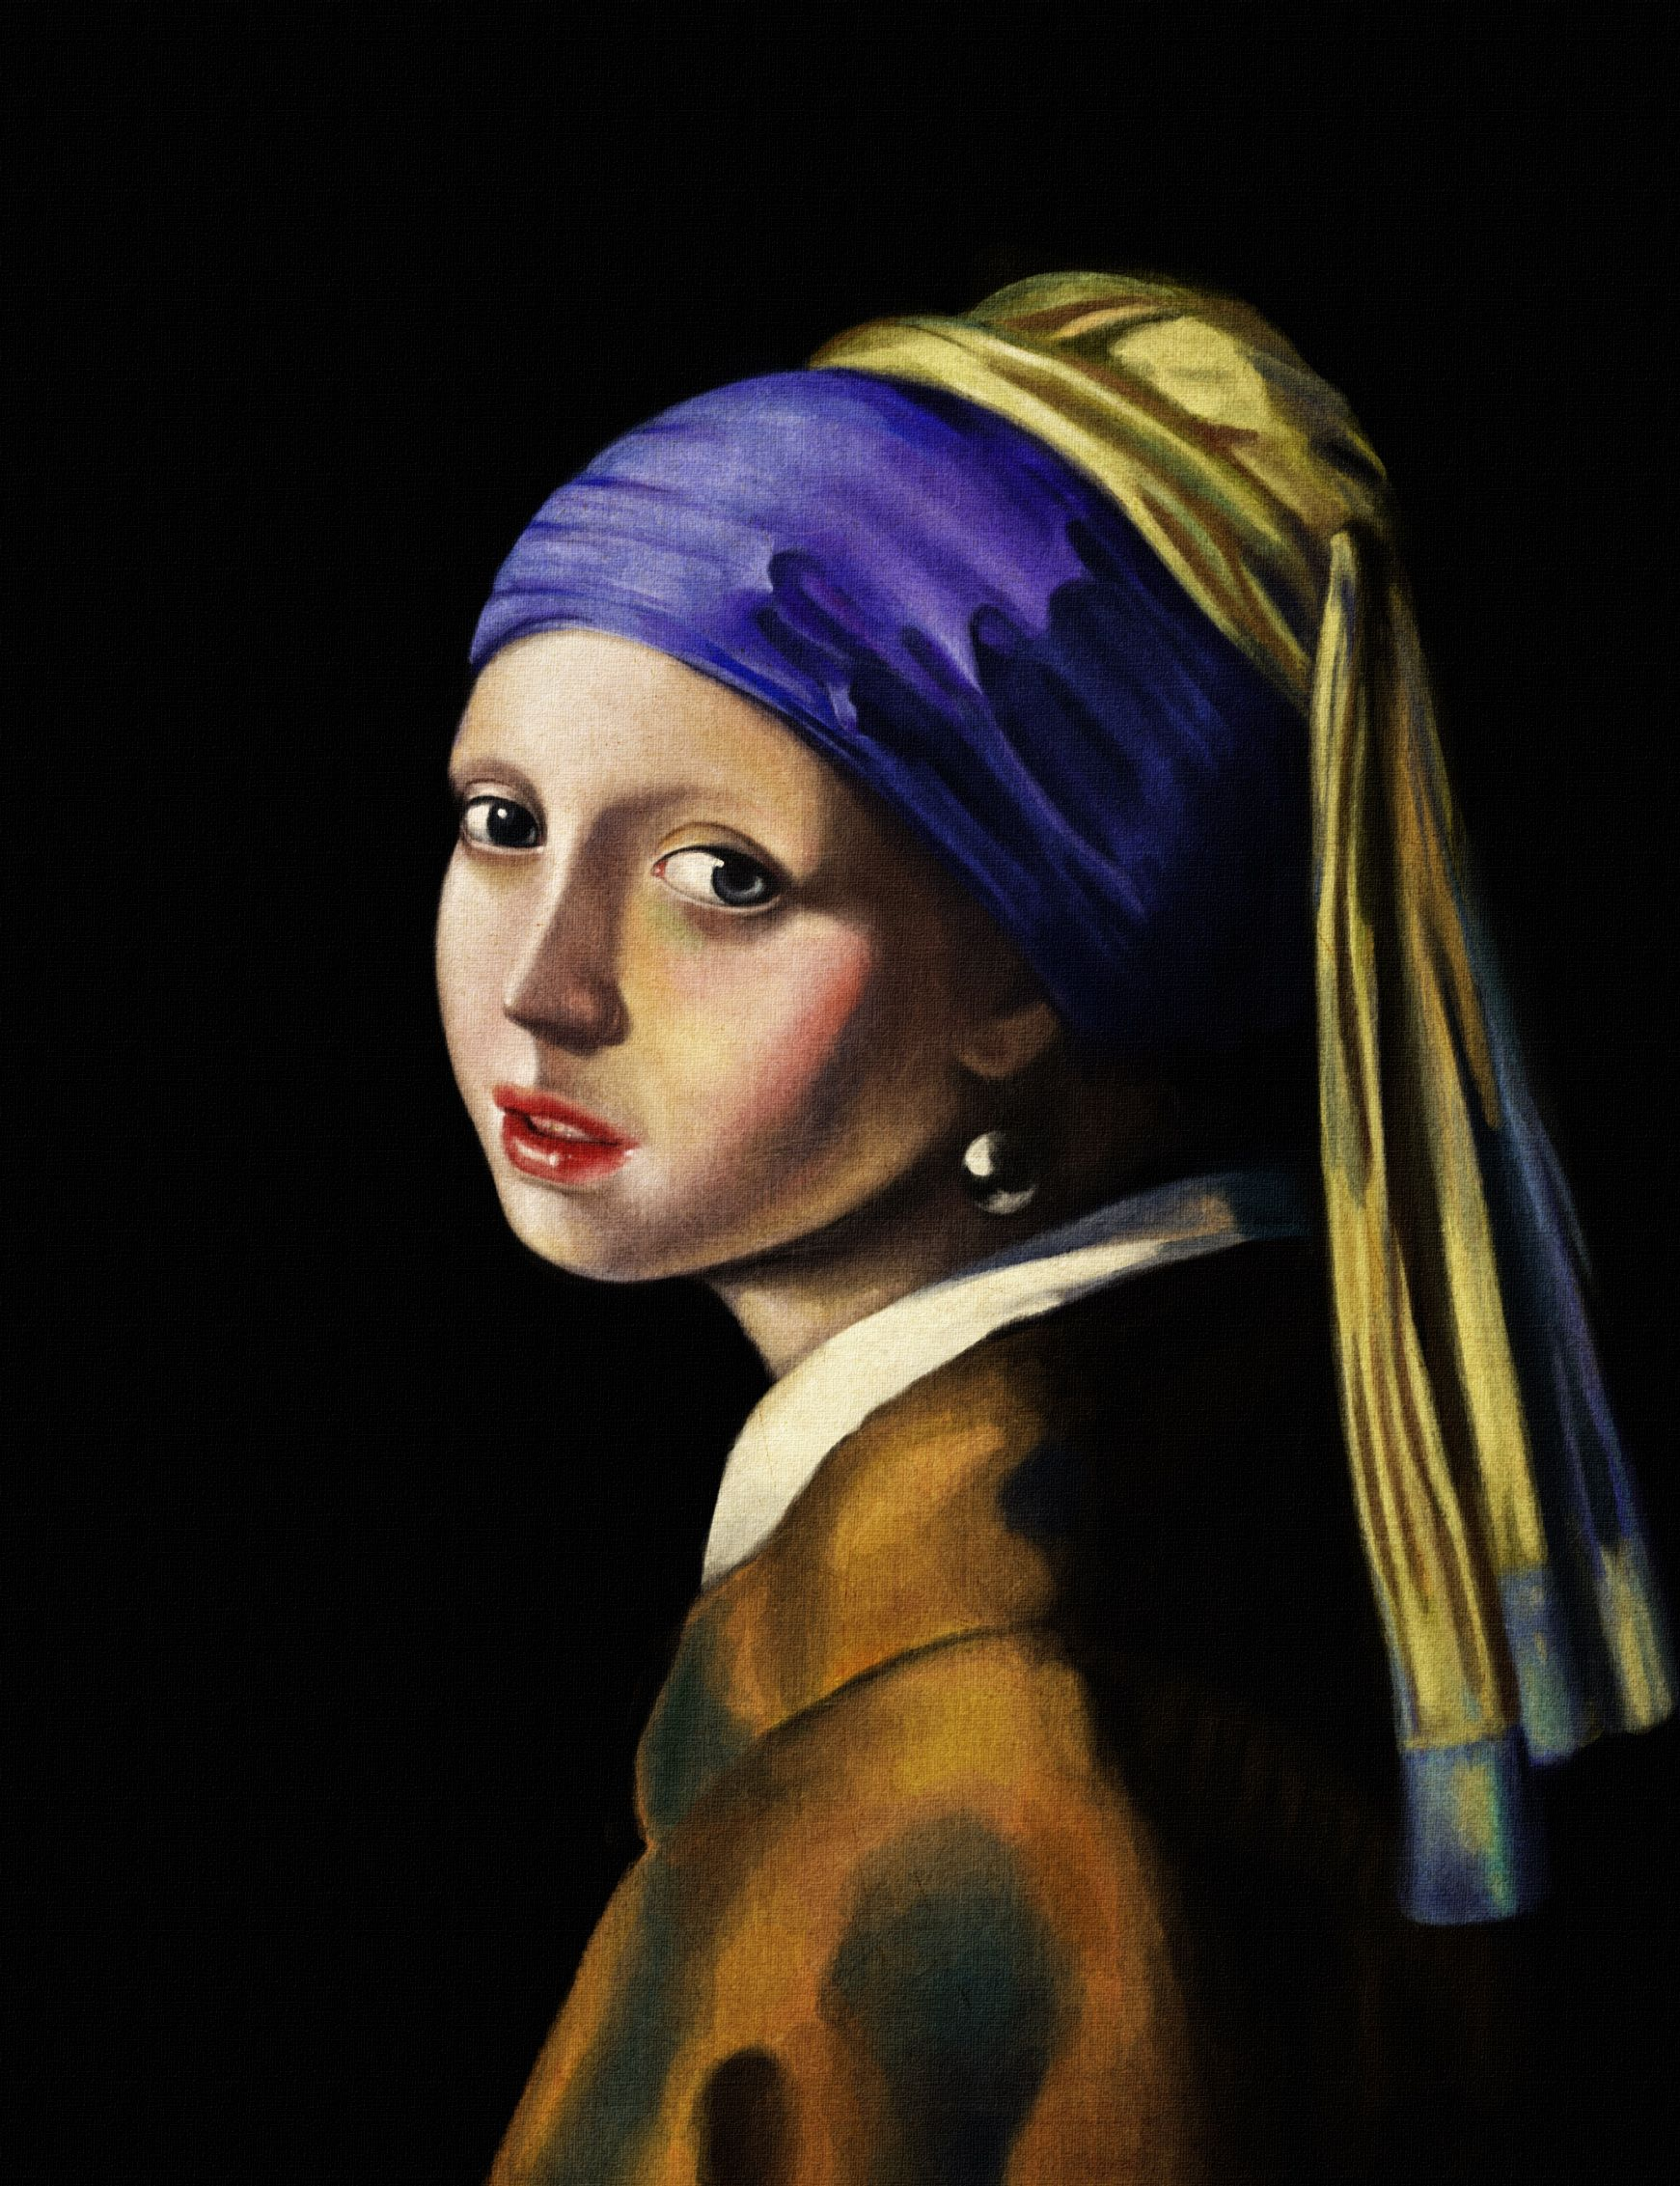 Girl with the pearl earring copy of Vermeer Most